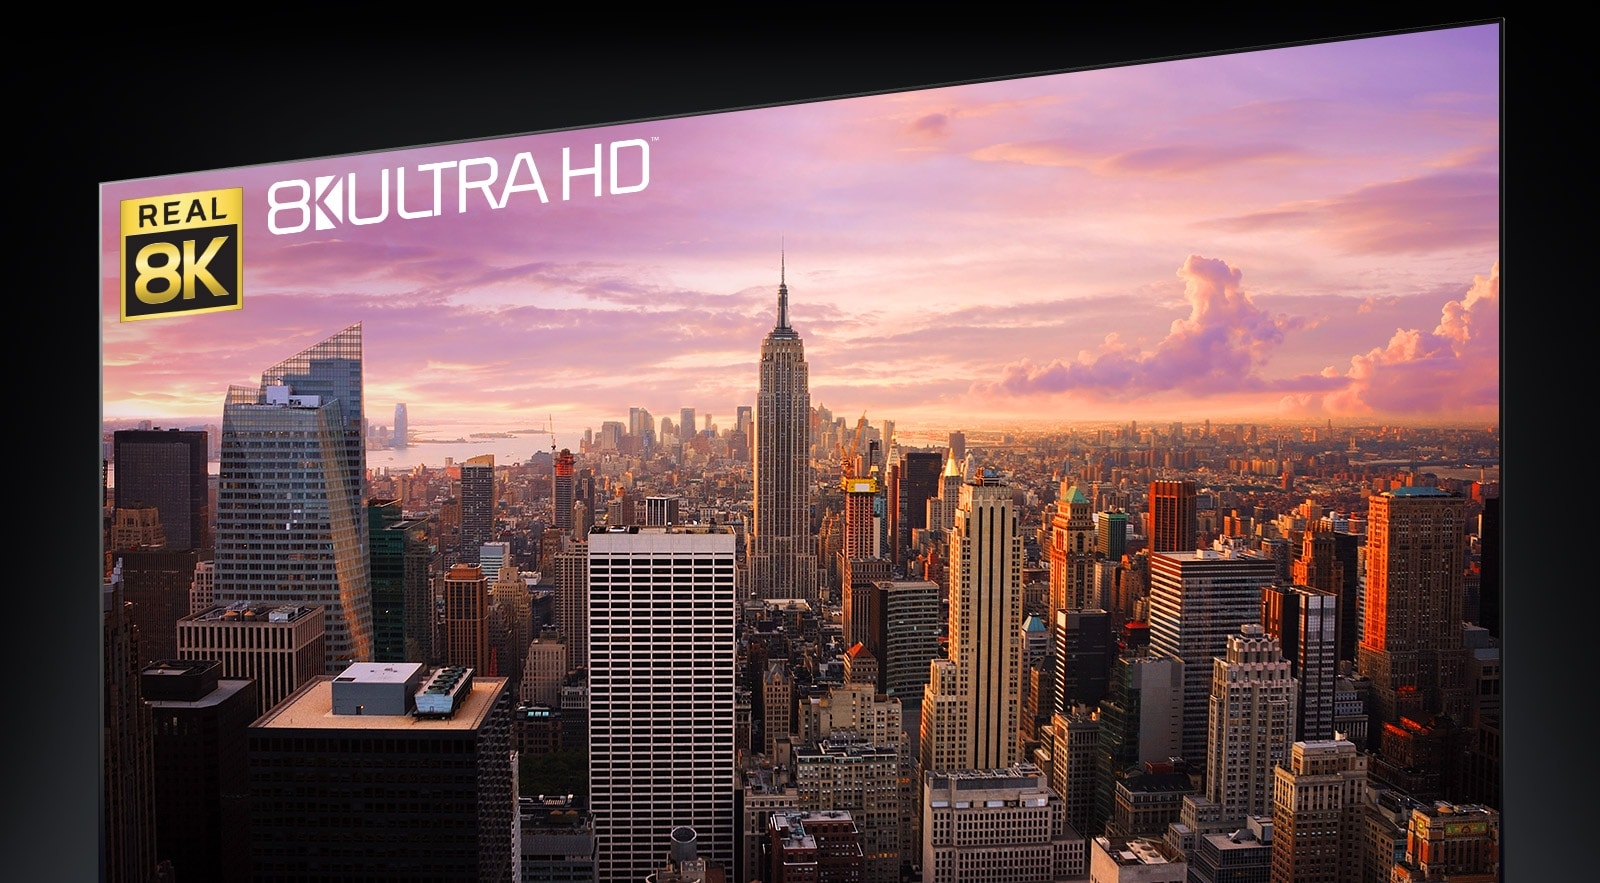 A panoramic view of New York City on the TV screen